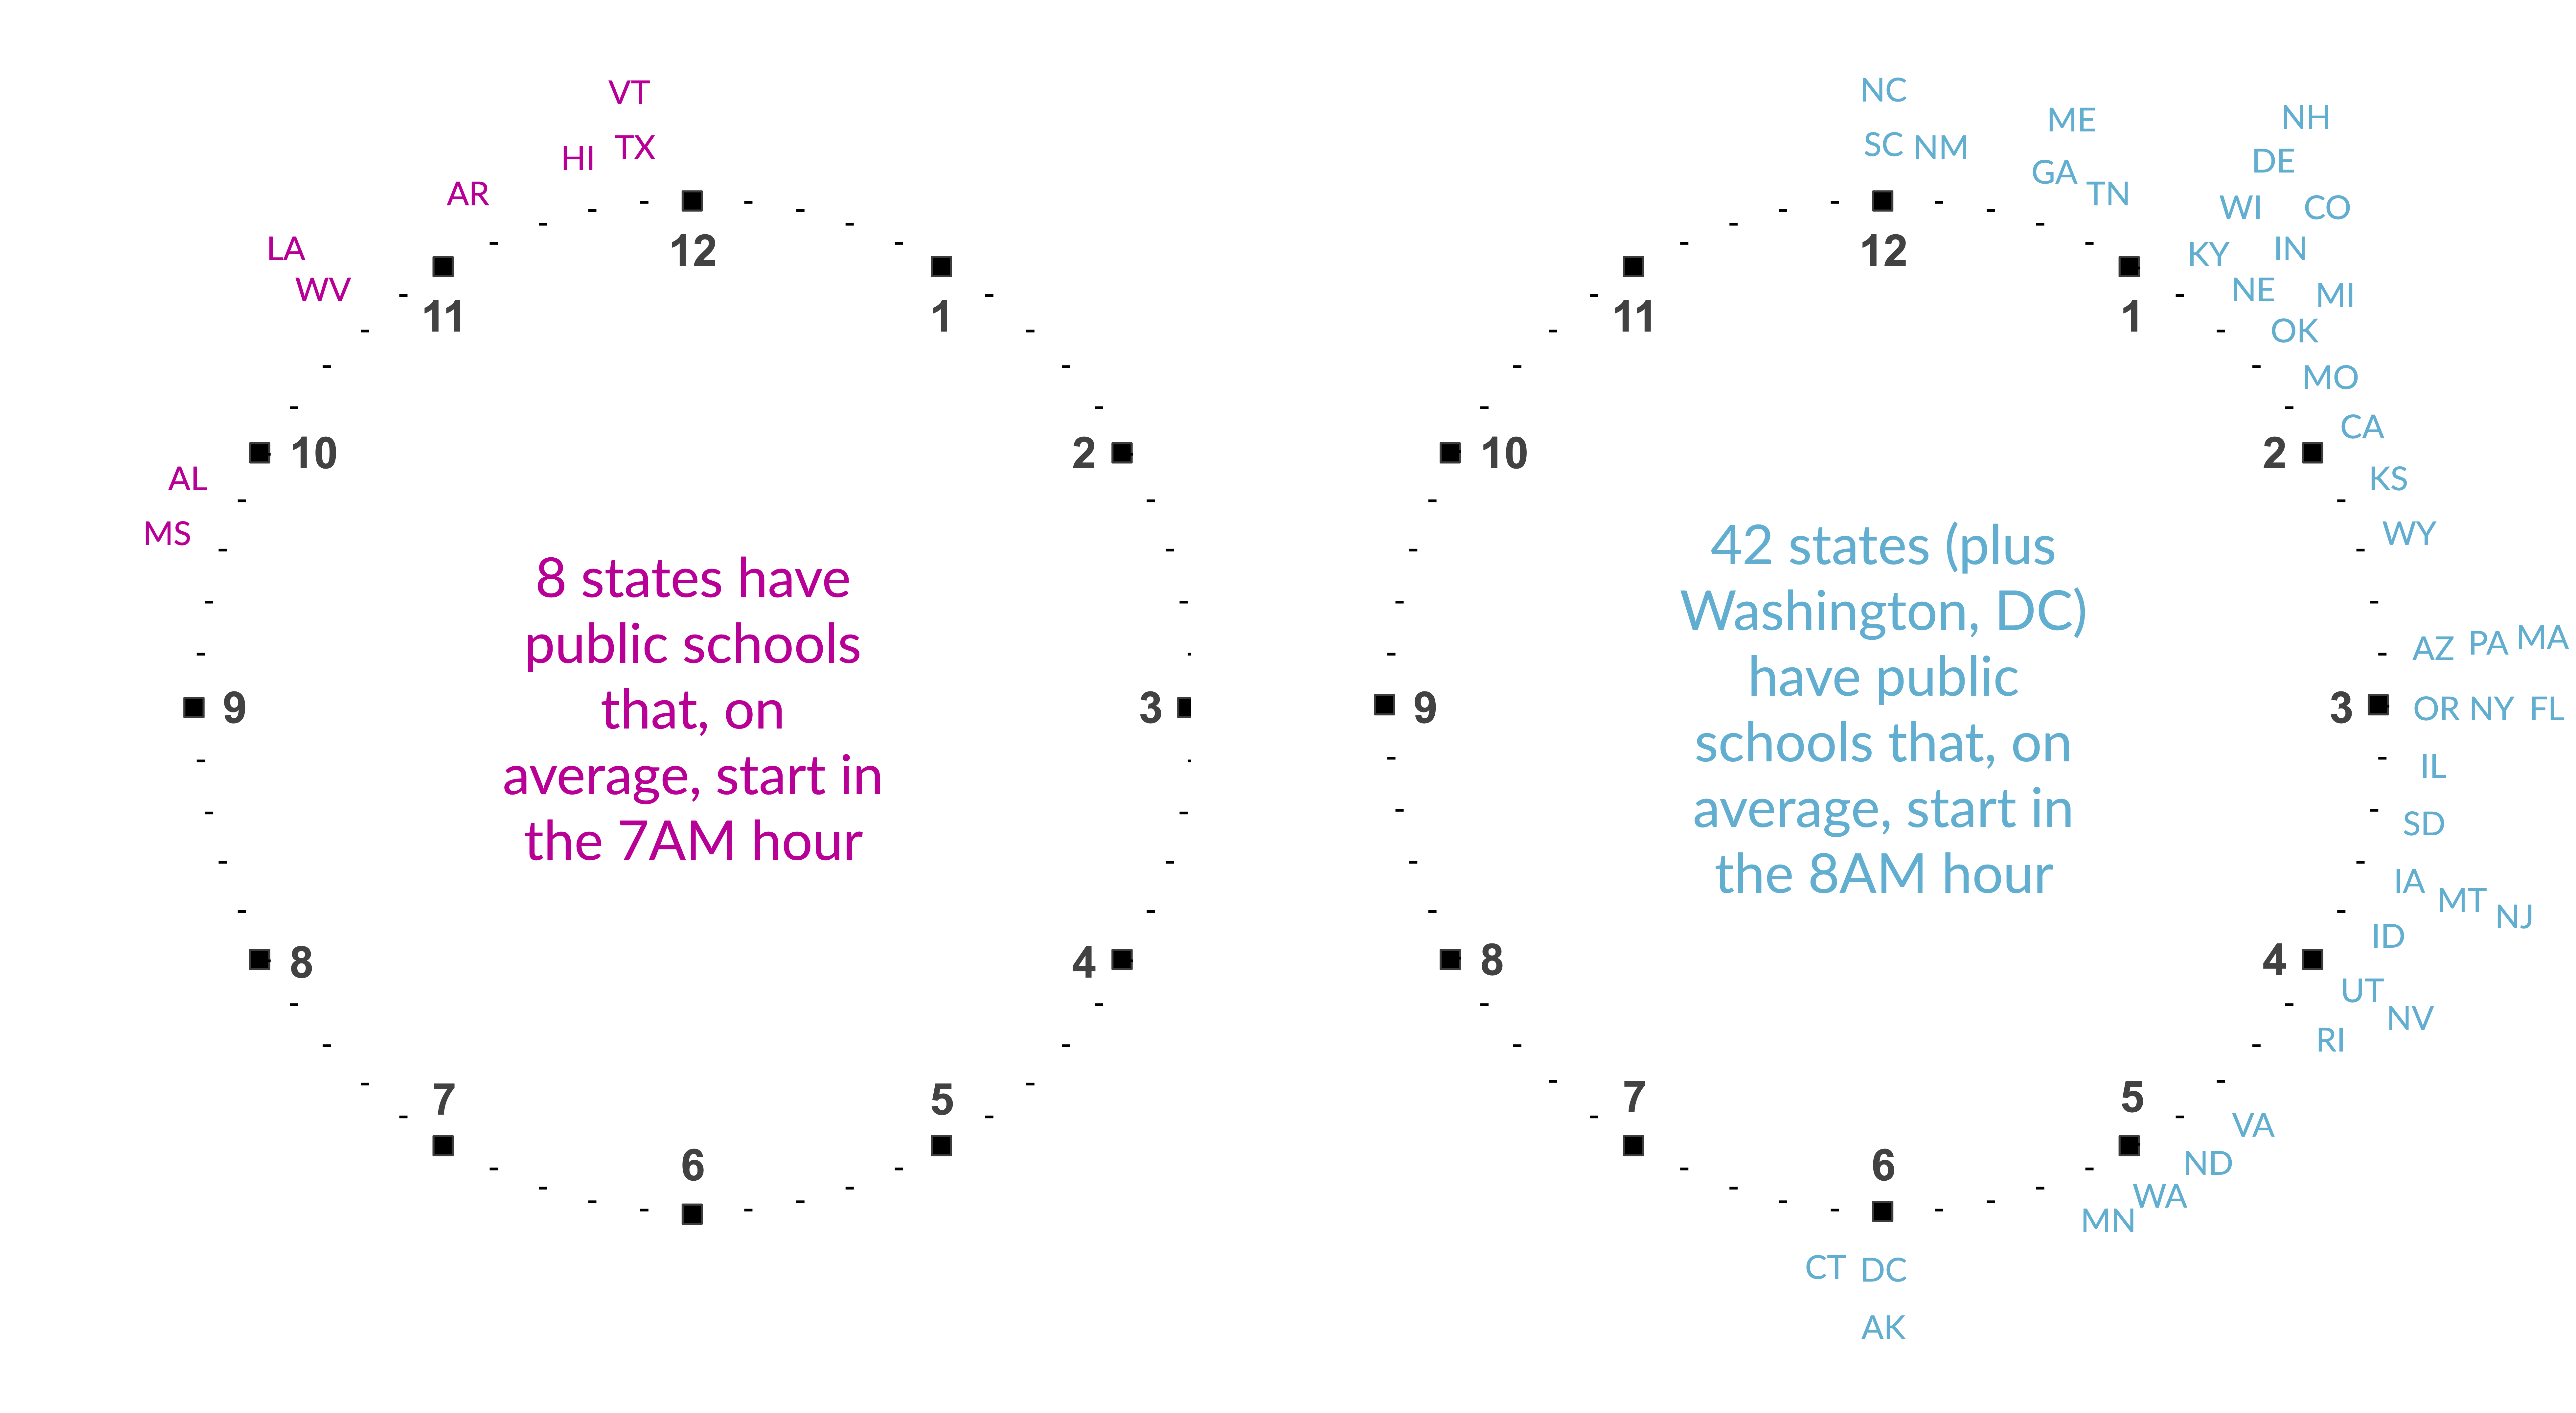 Two clocks of average public school starting times one for the 7am hour and another for the 8am hour